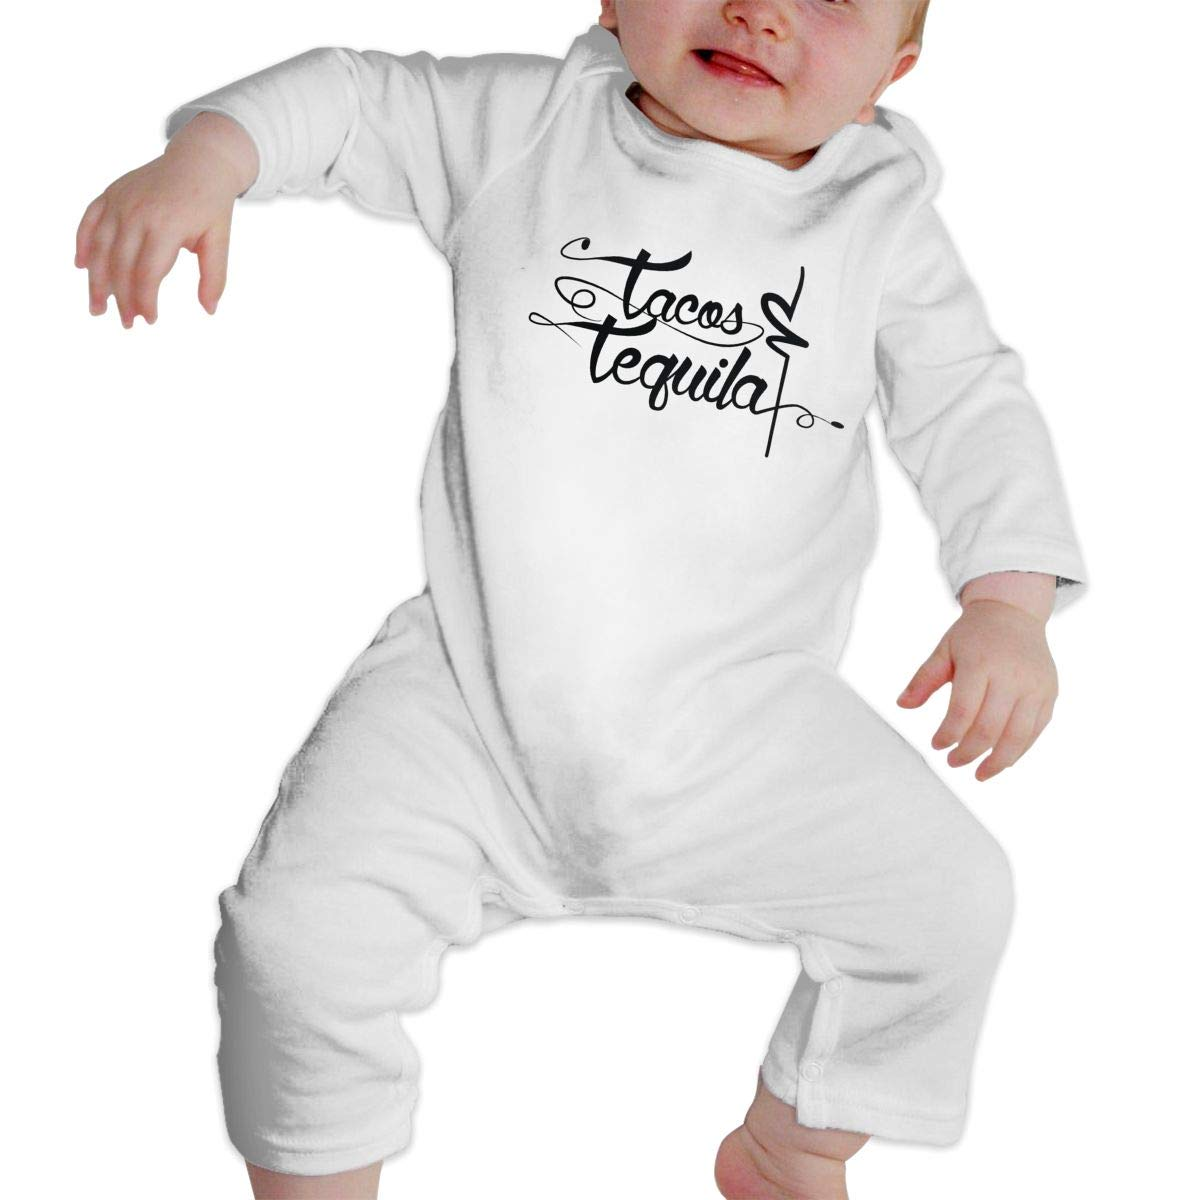 Fasenix Tacos /& Tequila Romper Jumpsuit Long Sleeve Bodysuit Overalls Outfits Clothes for Newborn Baby Boy Girl